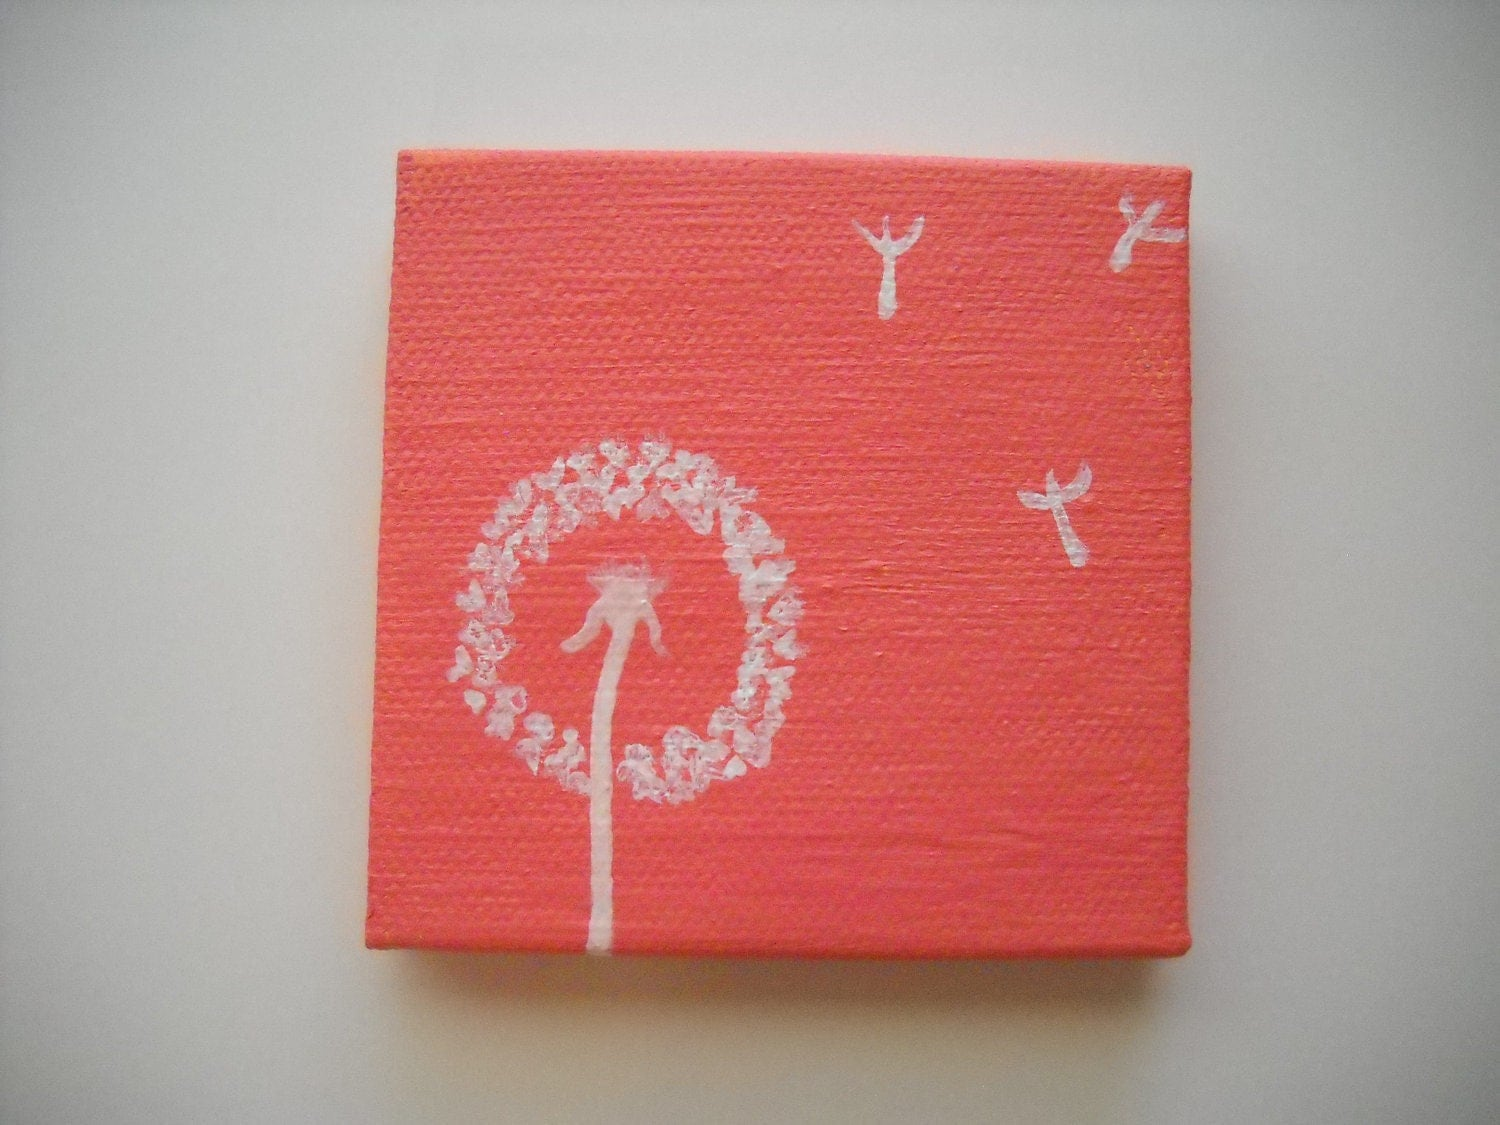 "Original Hand Painted 3x3 inch Mini Canvas Magnet - ""I Wish"""